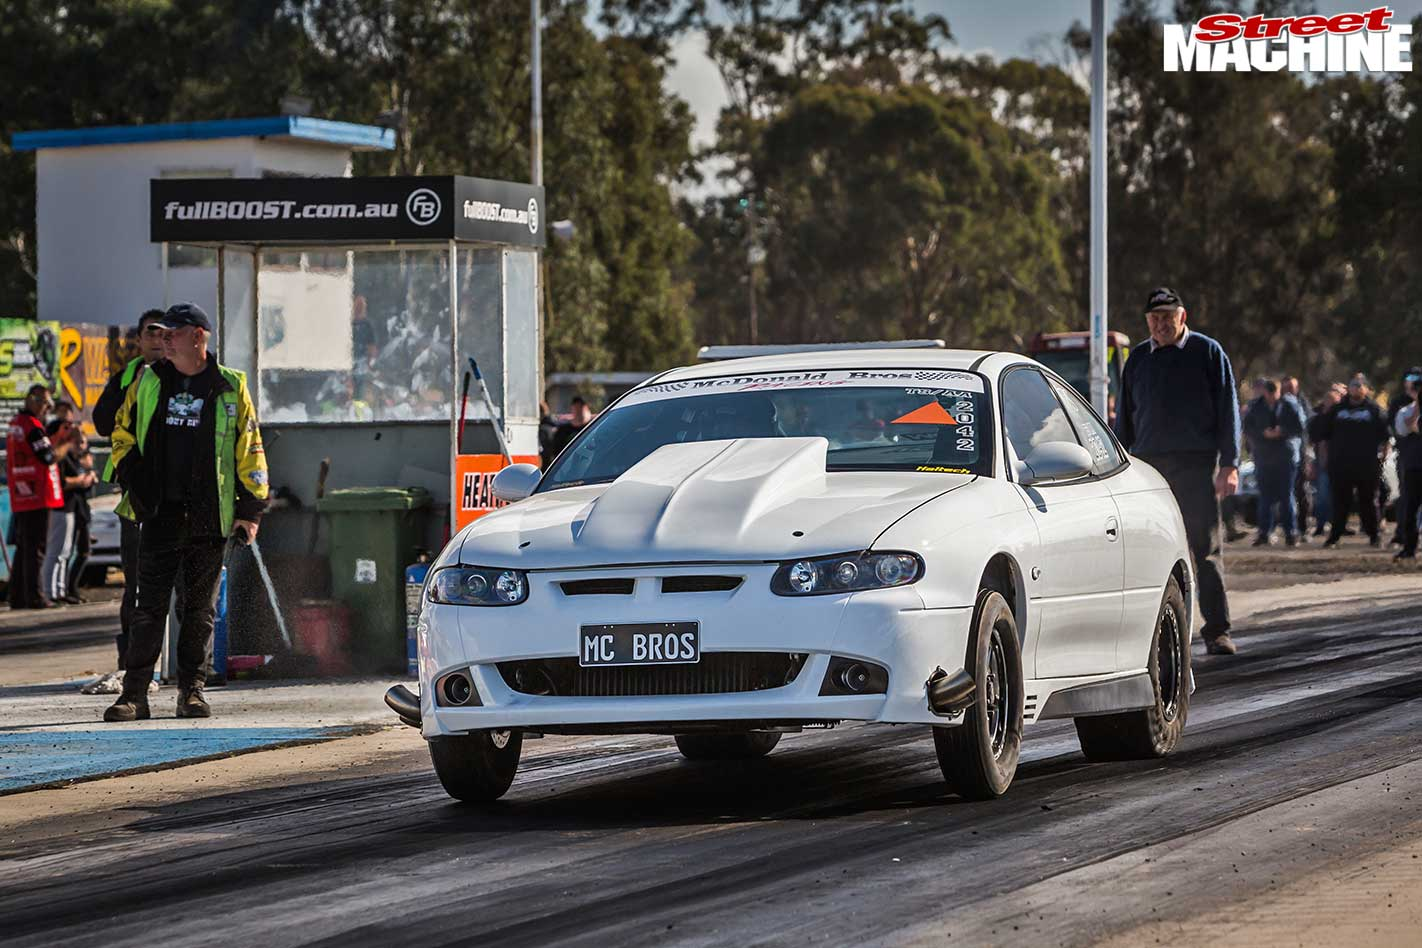 HSV GTO at Holden Nationals